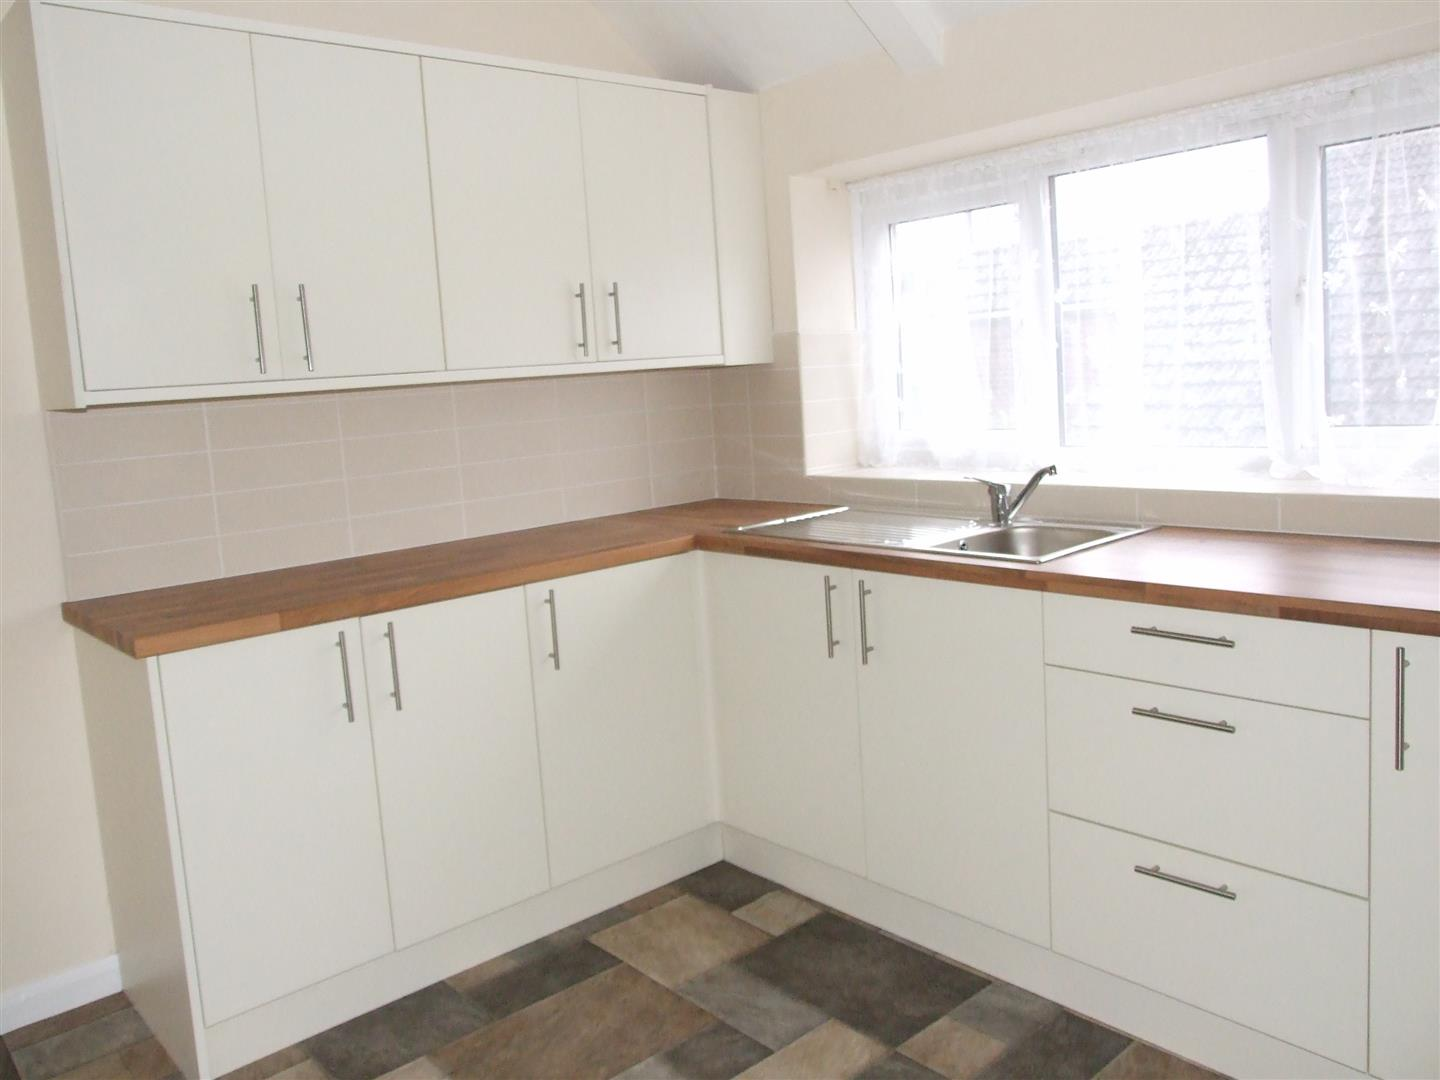 2 bed flat to rent in Sutton Bridge Spalding, PE12 9SF  - Property Image 5